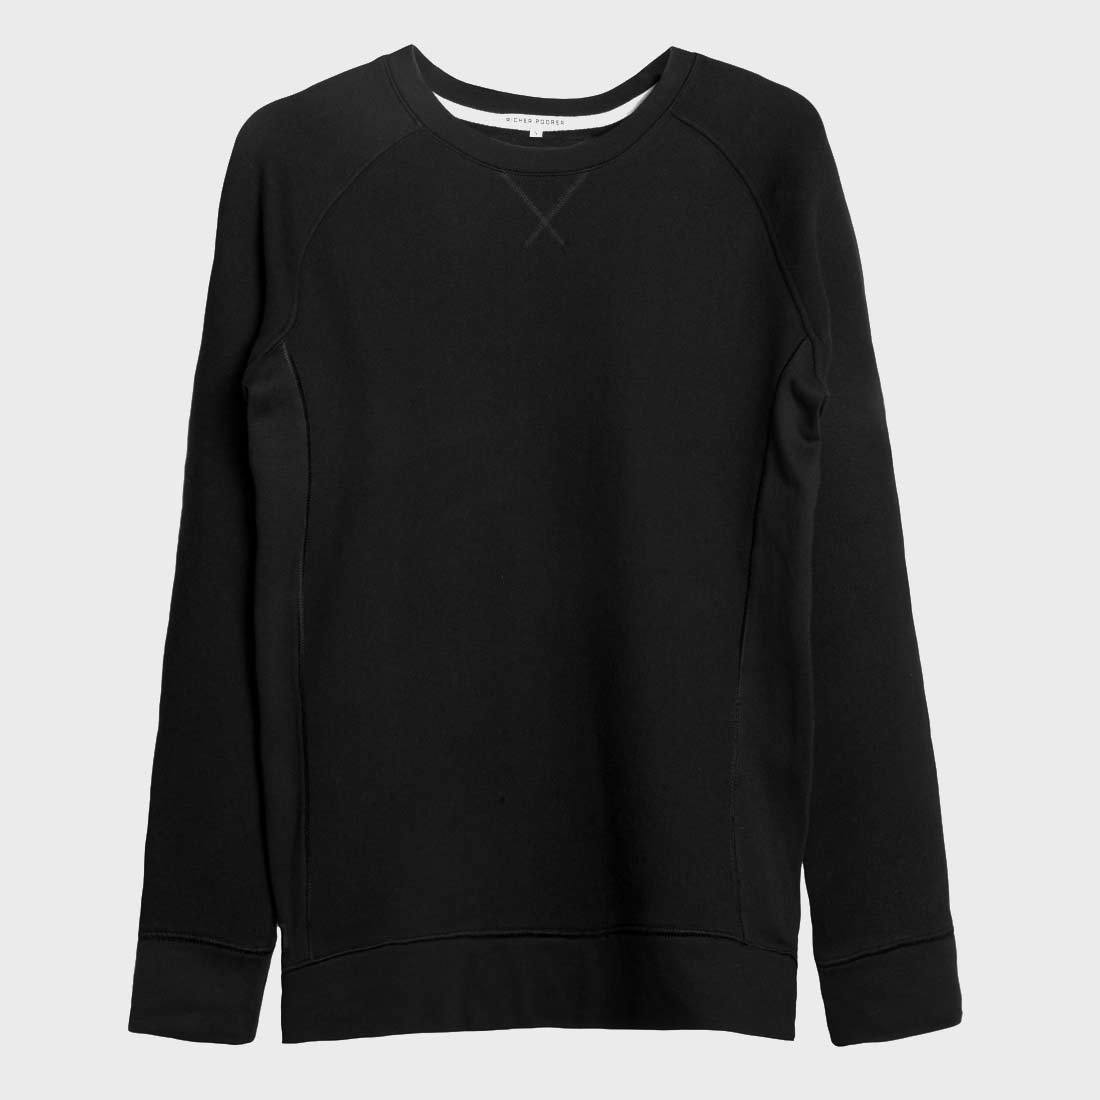 Richer Poorer Sweatshirt Women's Black